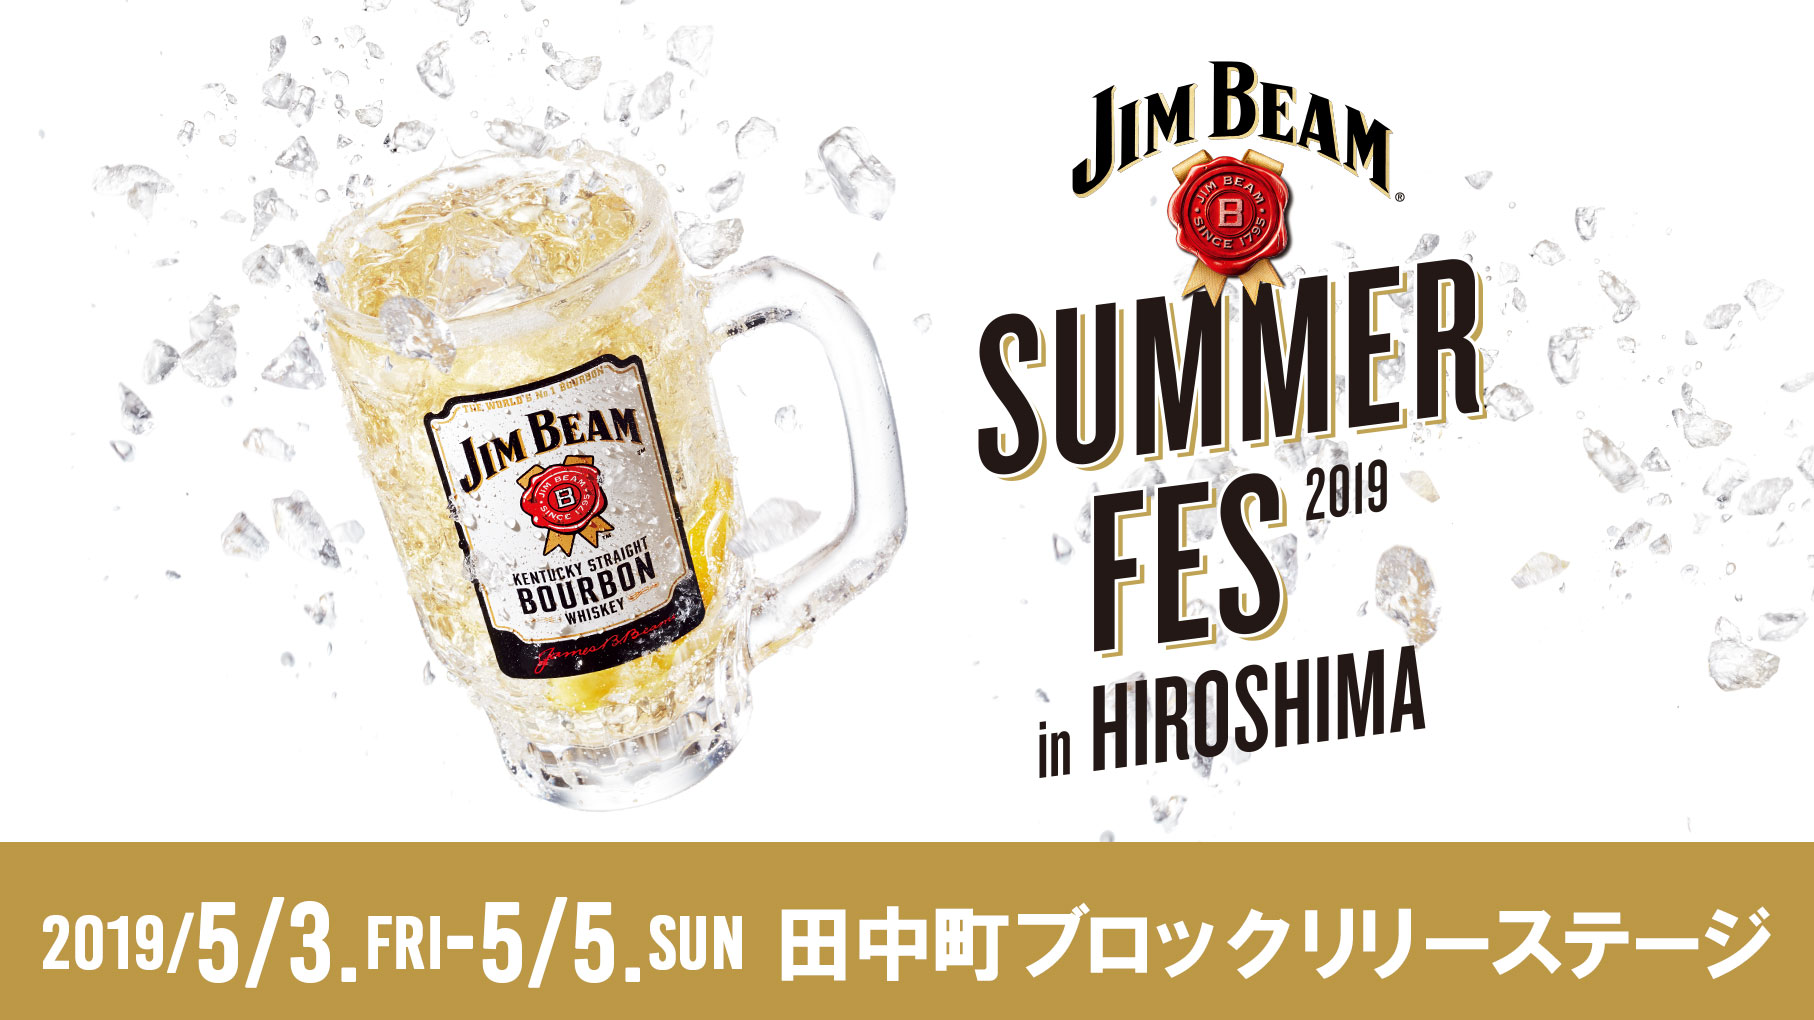 JIM BEAM SUMMER FES